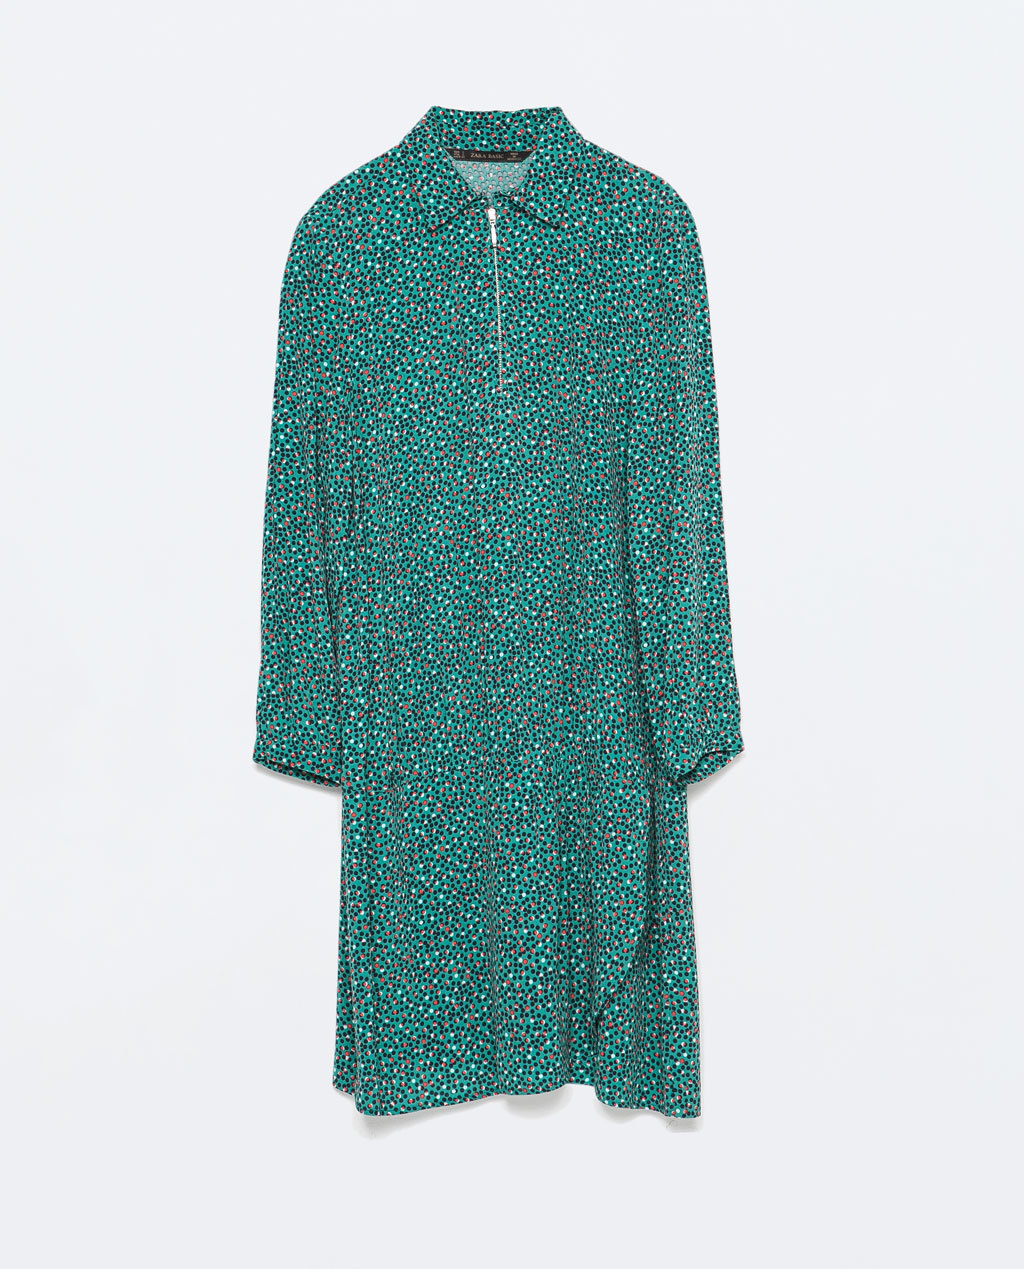 Zipped Crepe Shirtdress - style: shirt; neckline: shirt collar/peter pan/zip with opening; predominant colour: emerald green; occasions: casual, creative work; length: just above the knee; fit: body skimming; fibres: viscose/rayon - 100%; sleeve length: long sleeve; sleeve style: standard; texture group: crepes; pattern type: fabric; pattern size: big & busy; pattern: patterned/print; season: s/s 2015; wardrobe: highlight